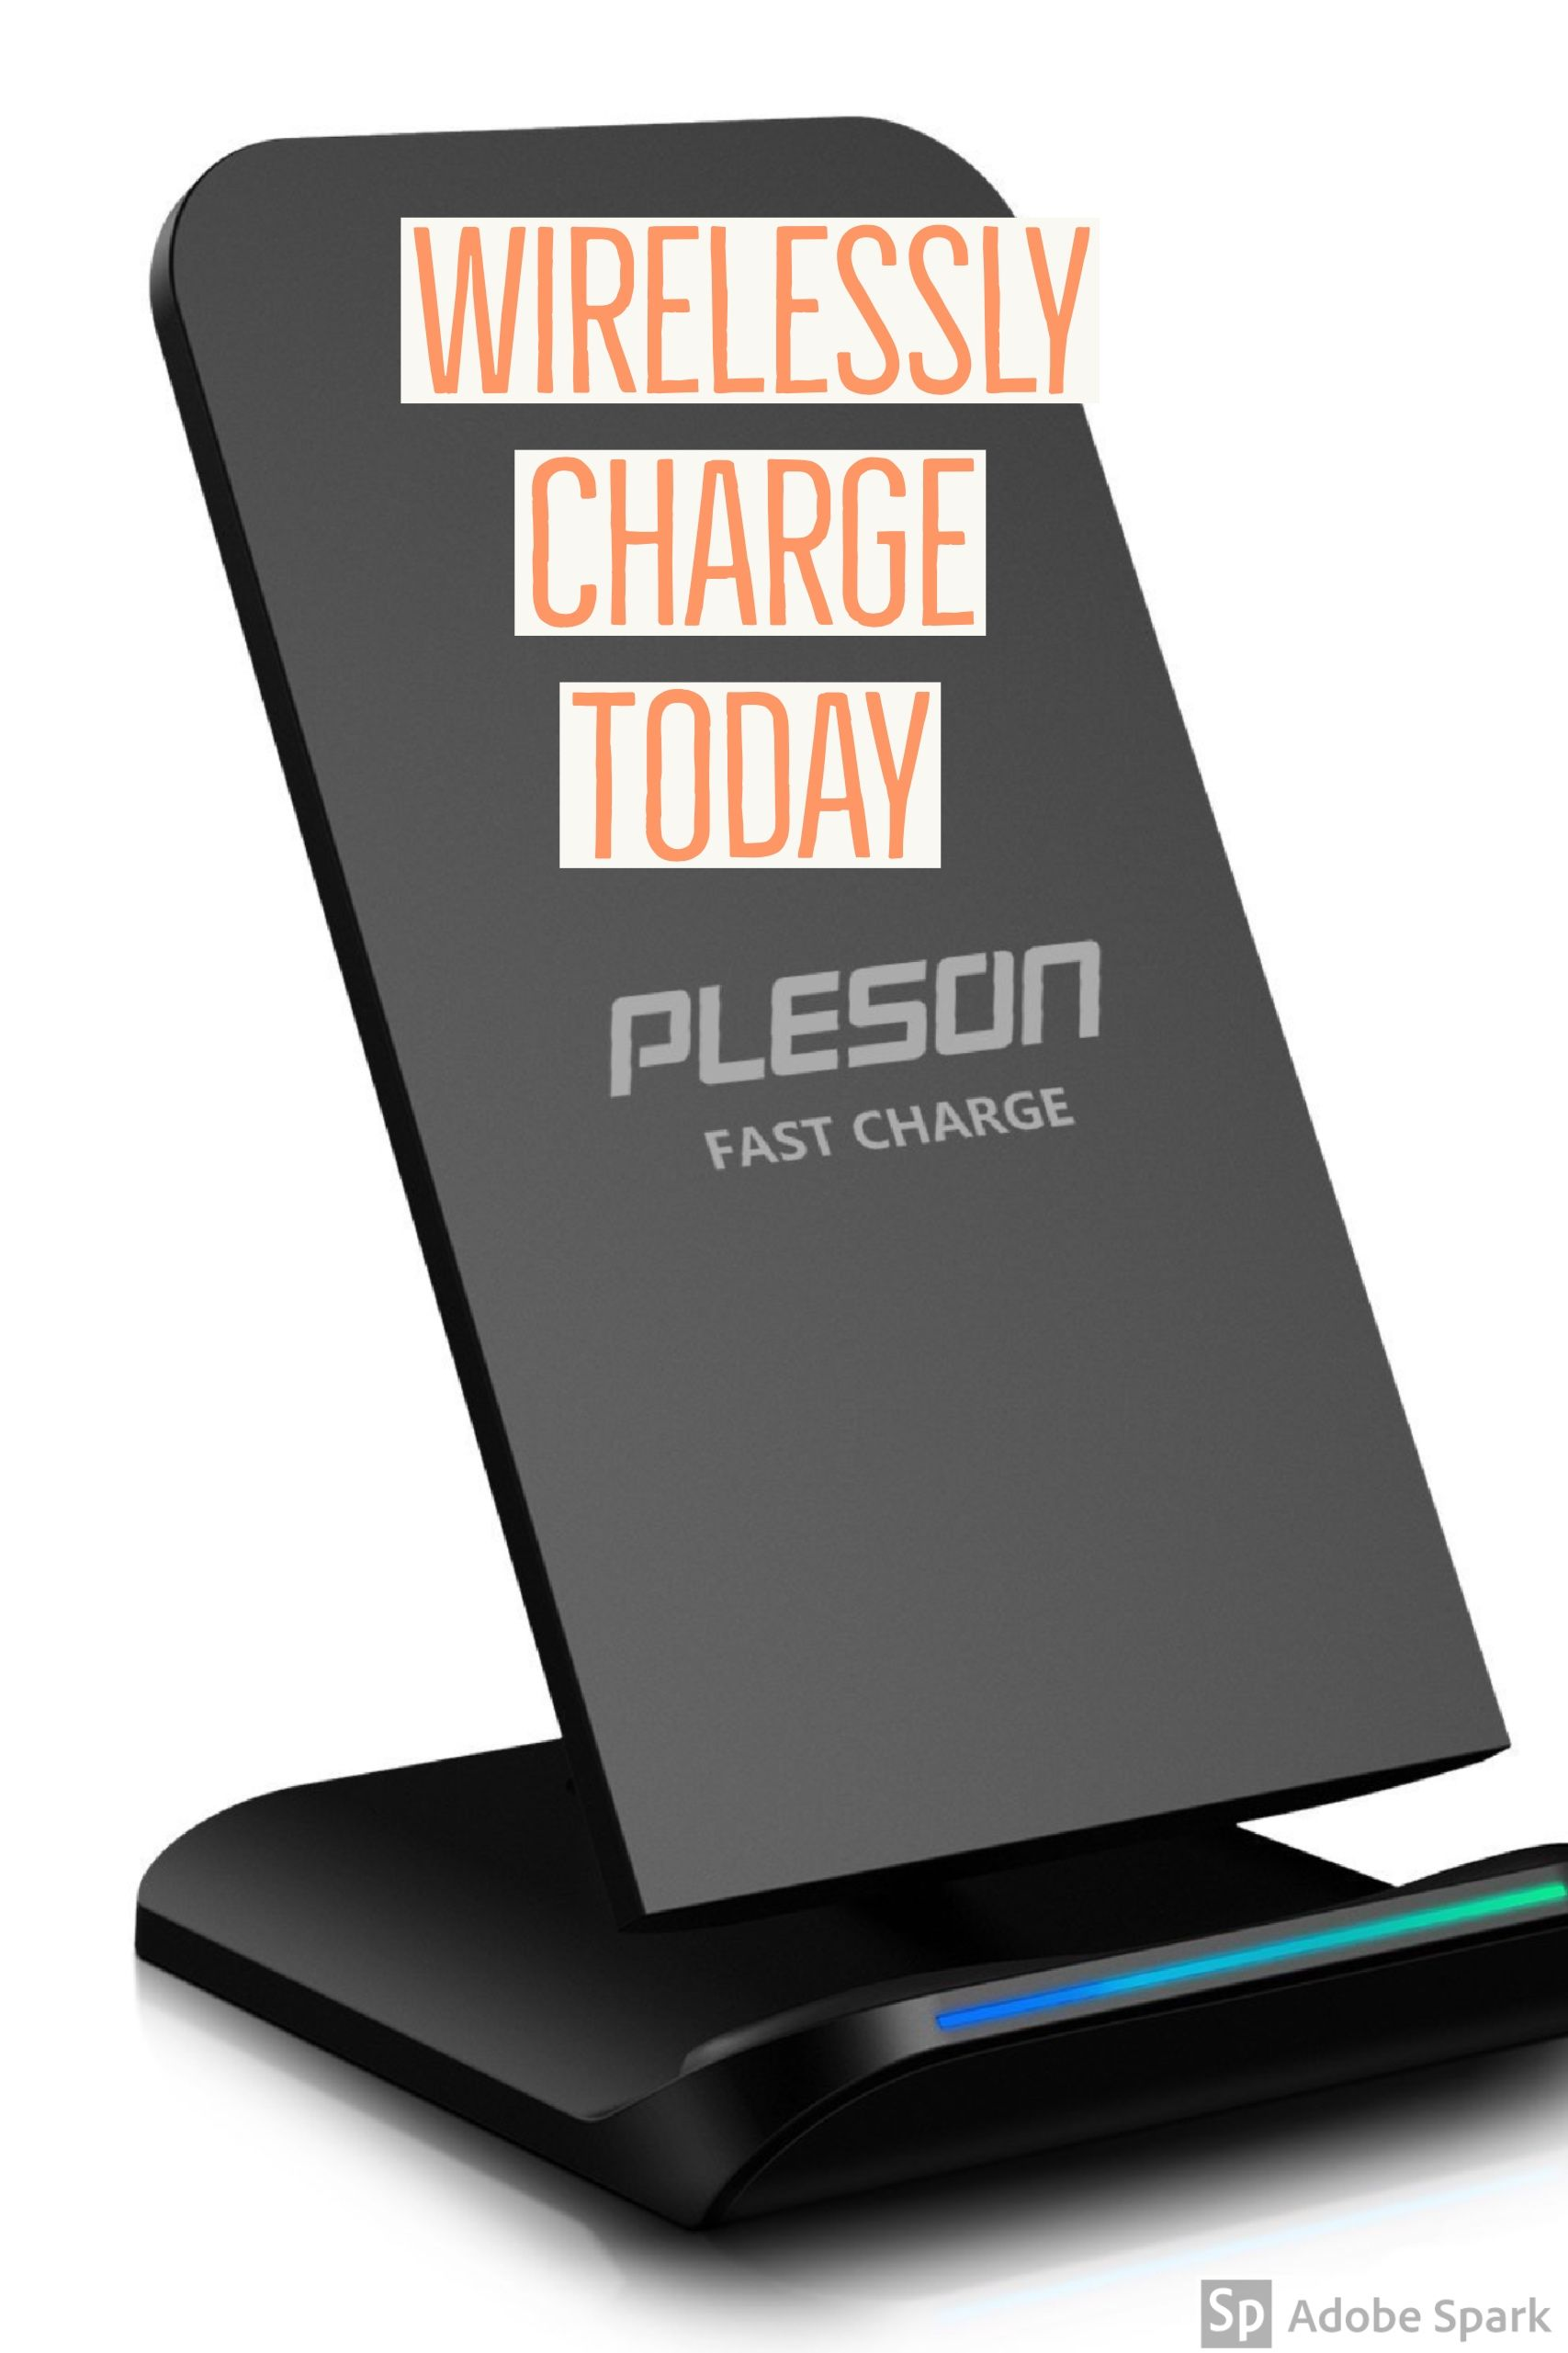 Pleson Fast Wireless Charger Cell Qi Charging Pad Lifeproof Samsung Galaxy S6 Fre Case 77 51242 Black Stand For Note 8 S8 Plus S7 Edge 5 And Standard Charge